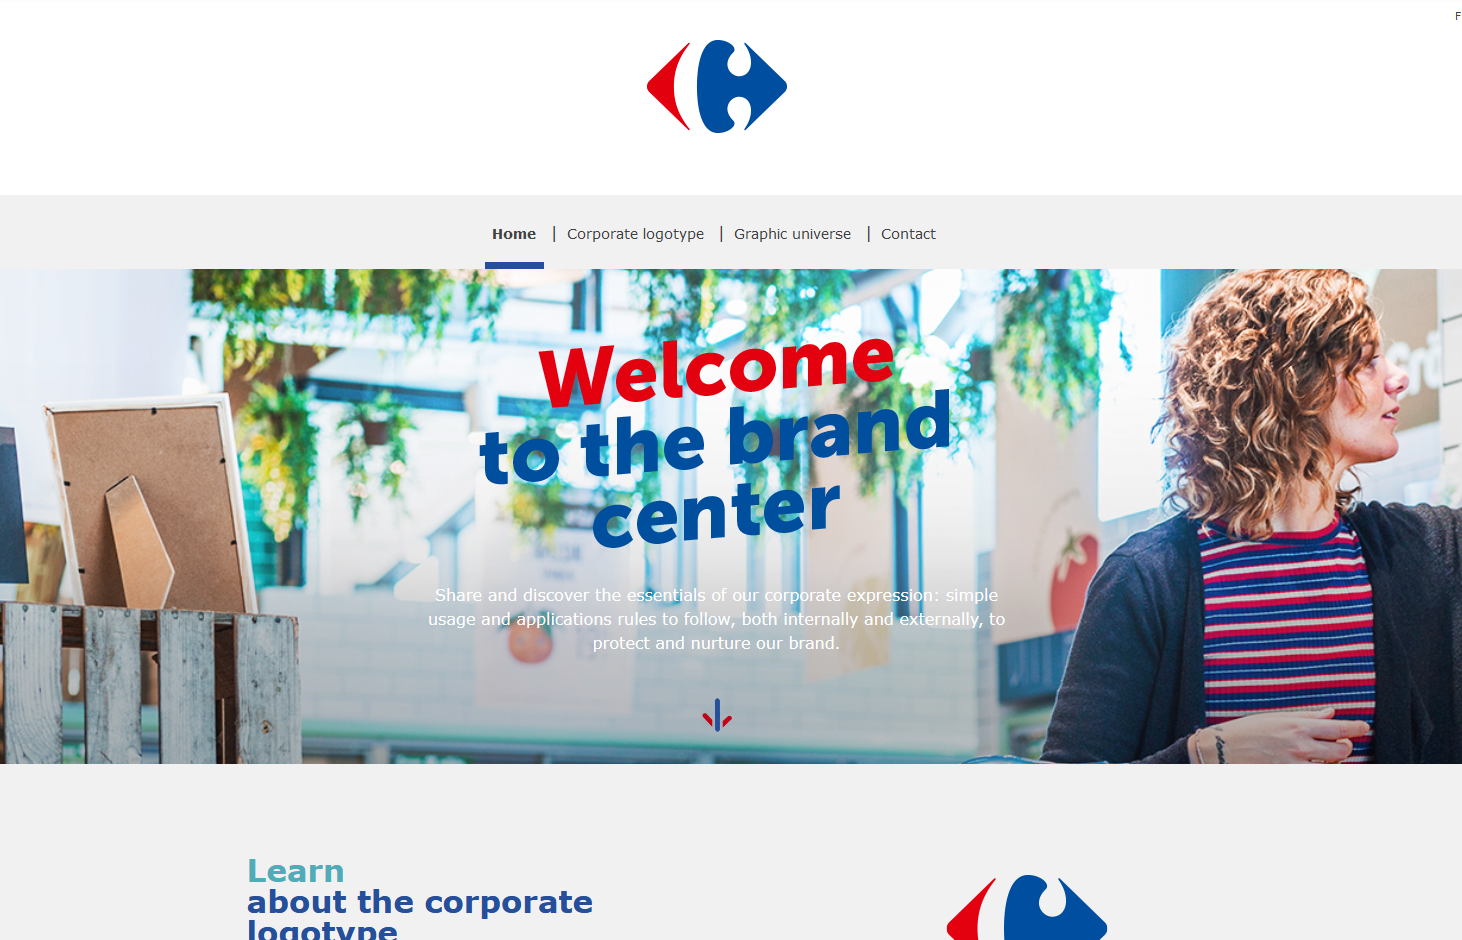 Carrefour's Brand Guide